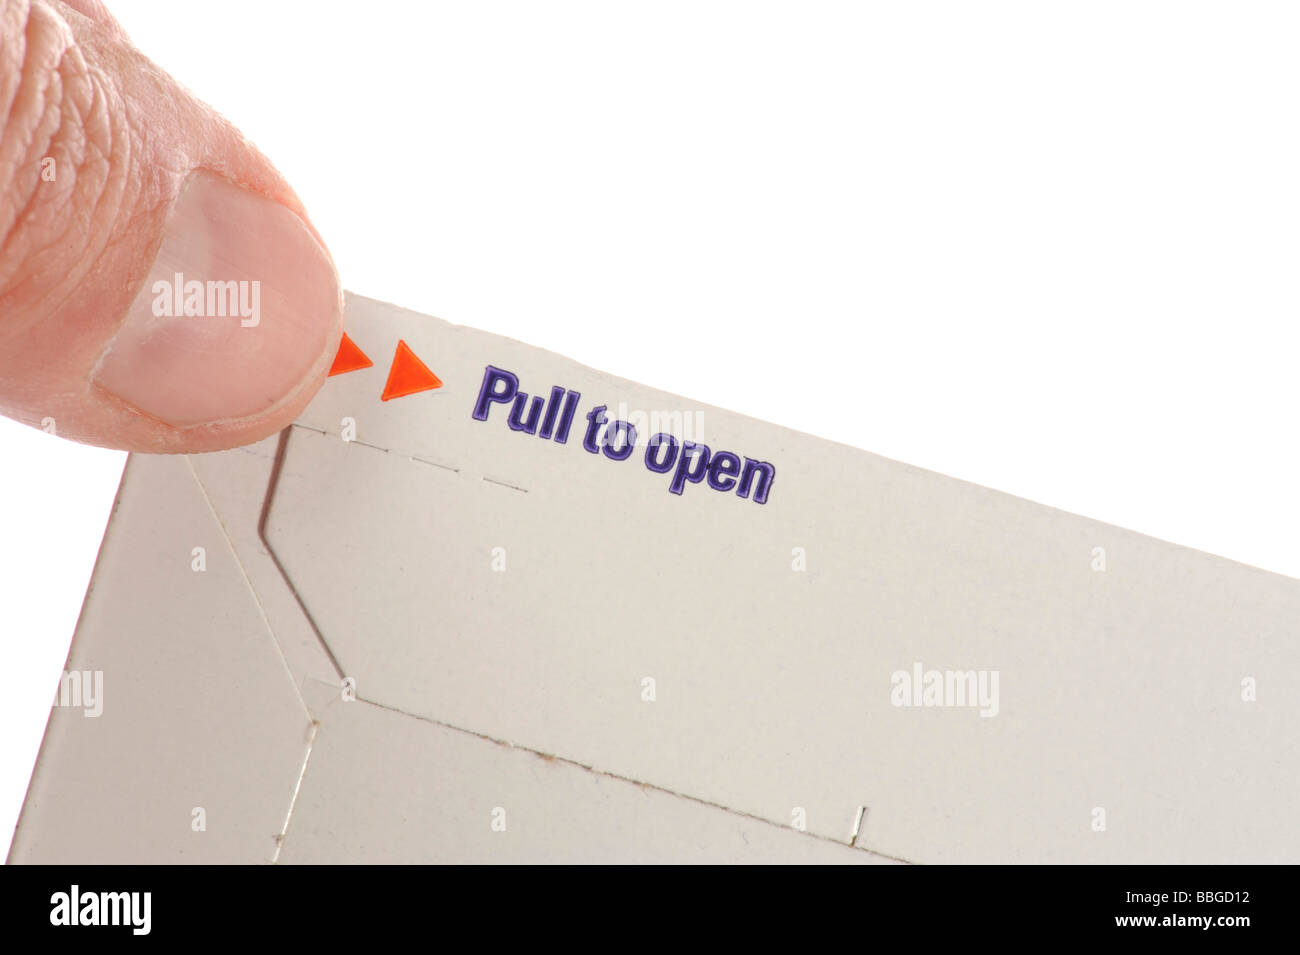 Opening flap of an envelope from recyclable materials - Stock Image